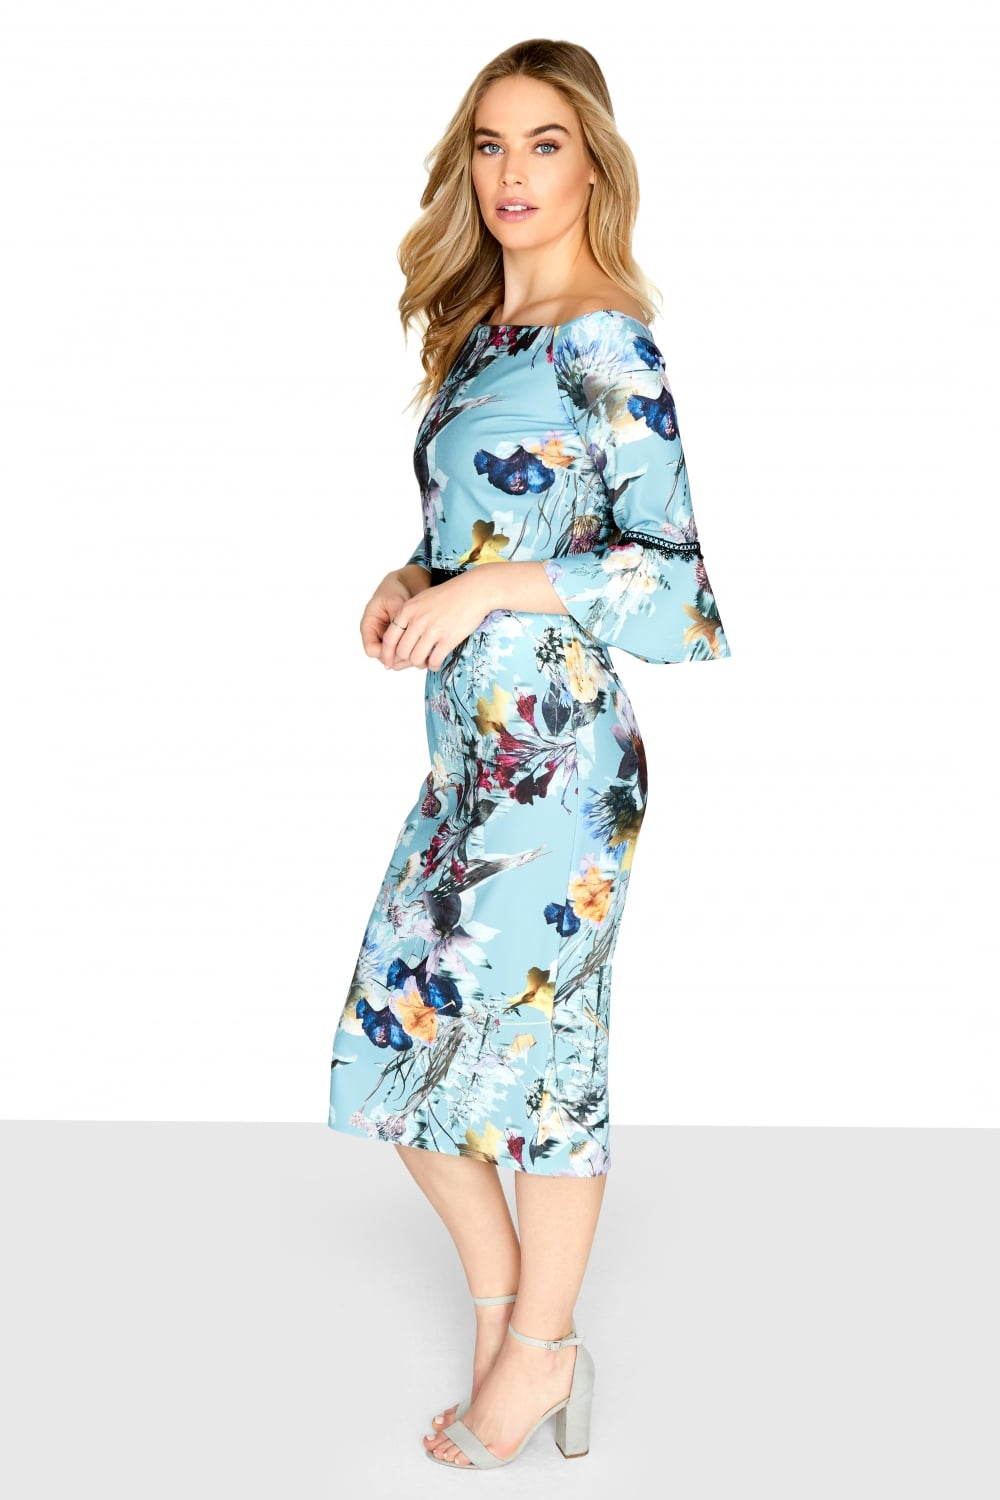 tibby floral midi bodycon dress from little mistress uk